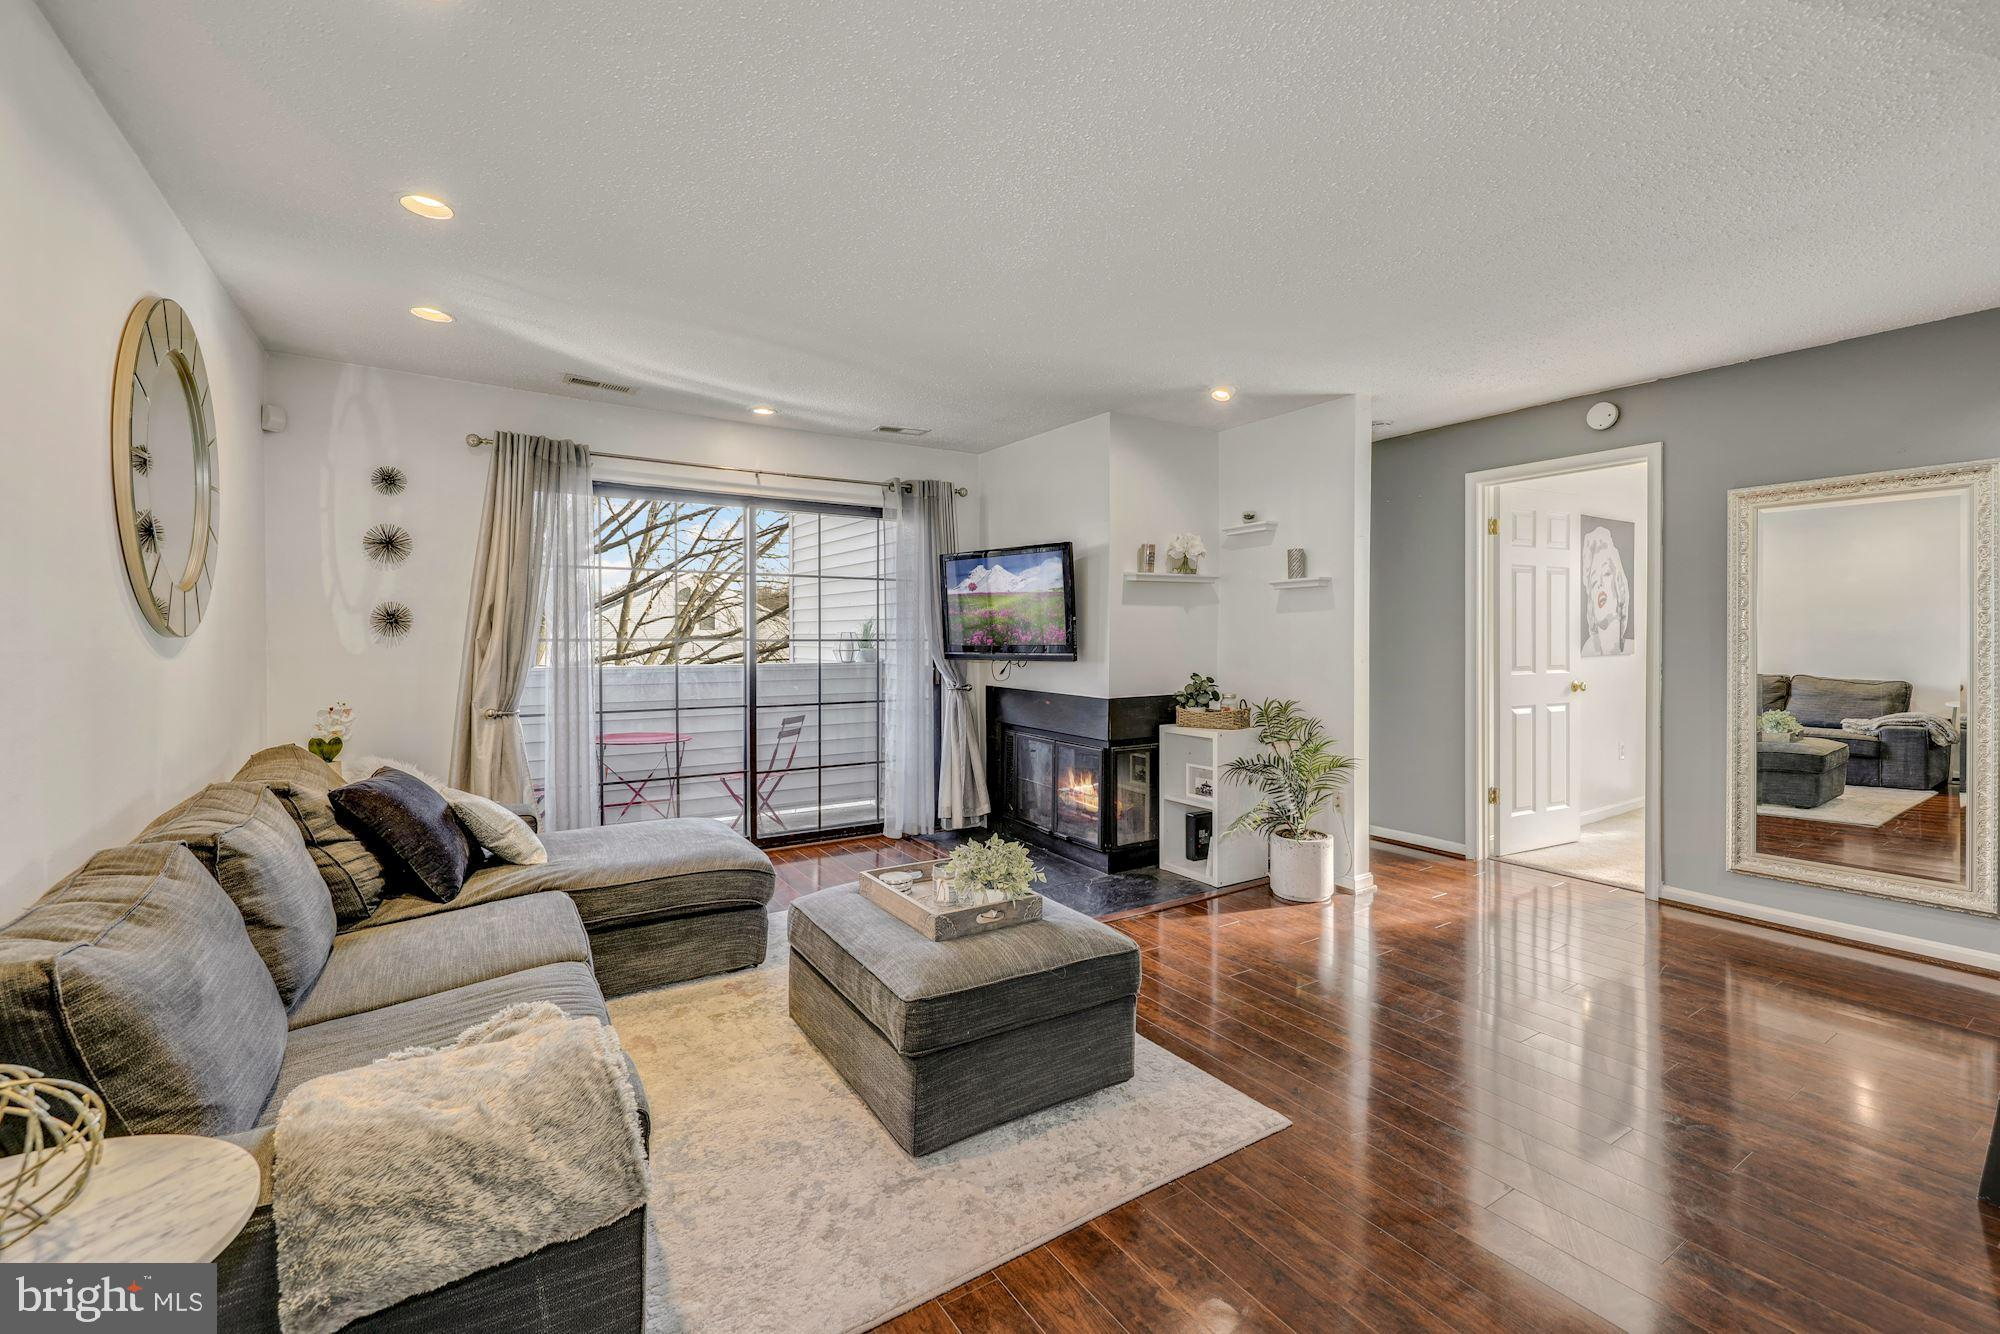 STUNNING GARDEN STYLE CONDO. RENOVAYED FROM TOP TO BOTTOM! THIS GORGEOUS & WELL MAINTAINED UNIT AWAI